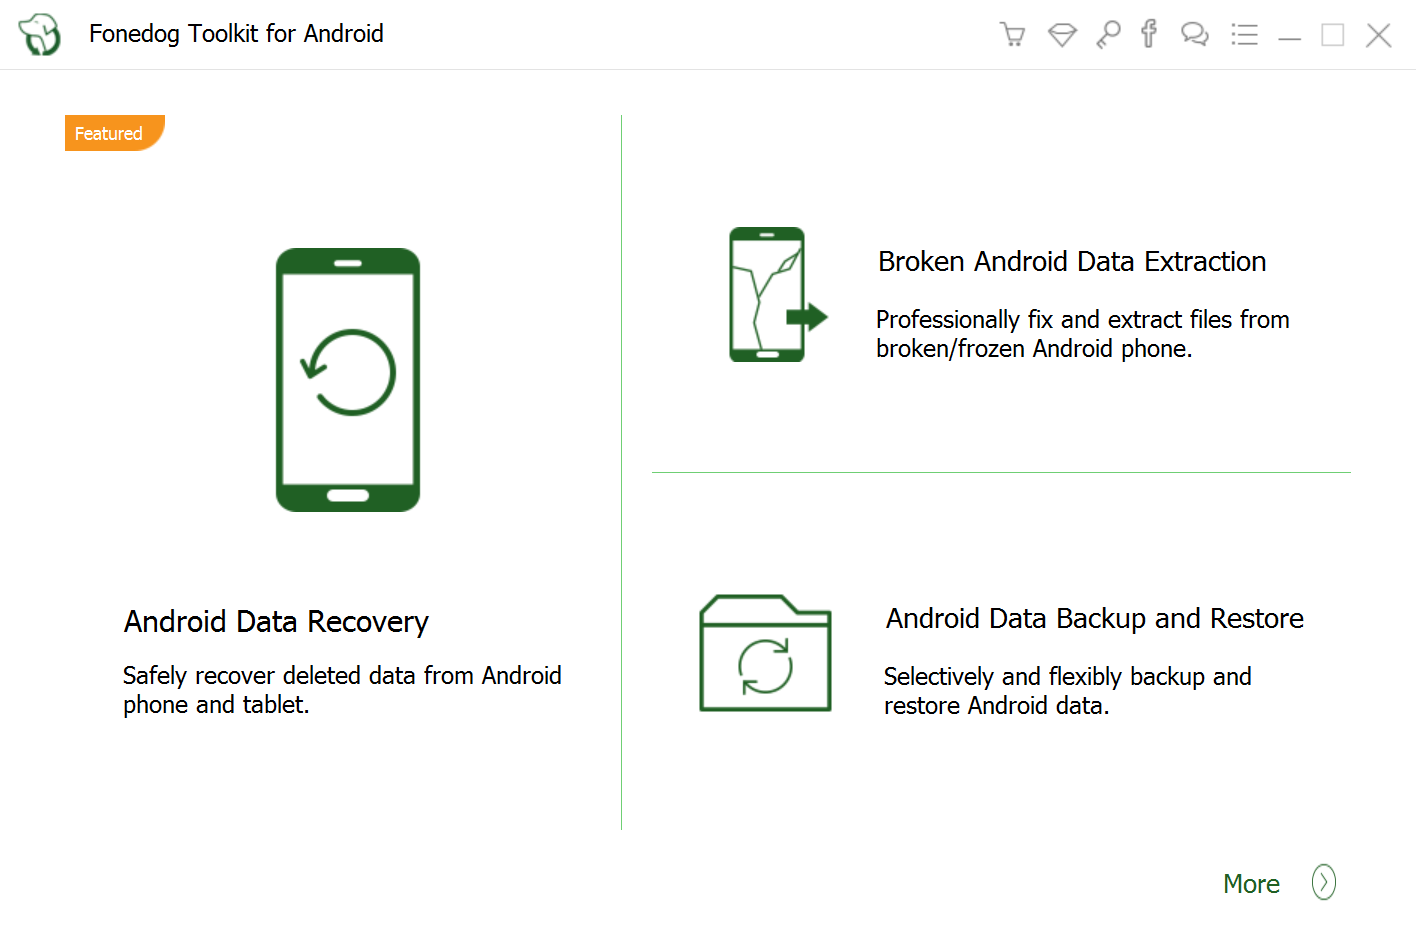 FoneDog toolkit - Android Data Recovery 100% Secure and